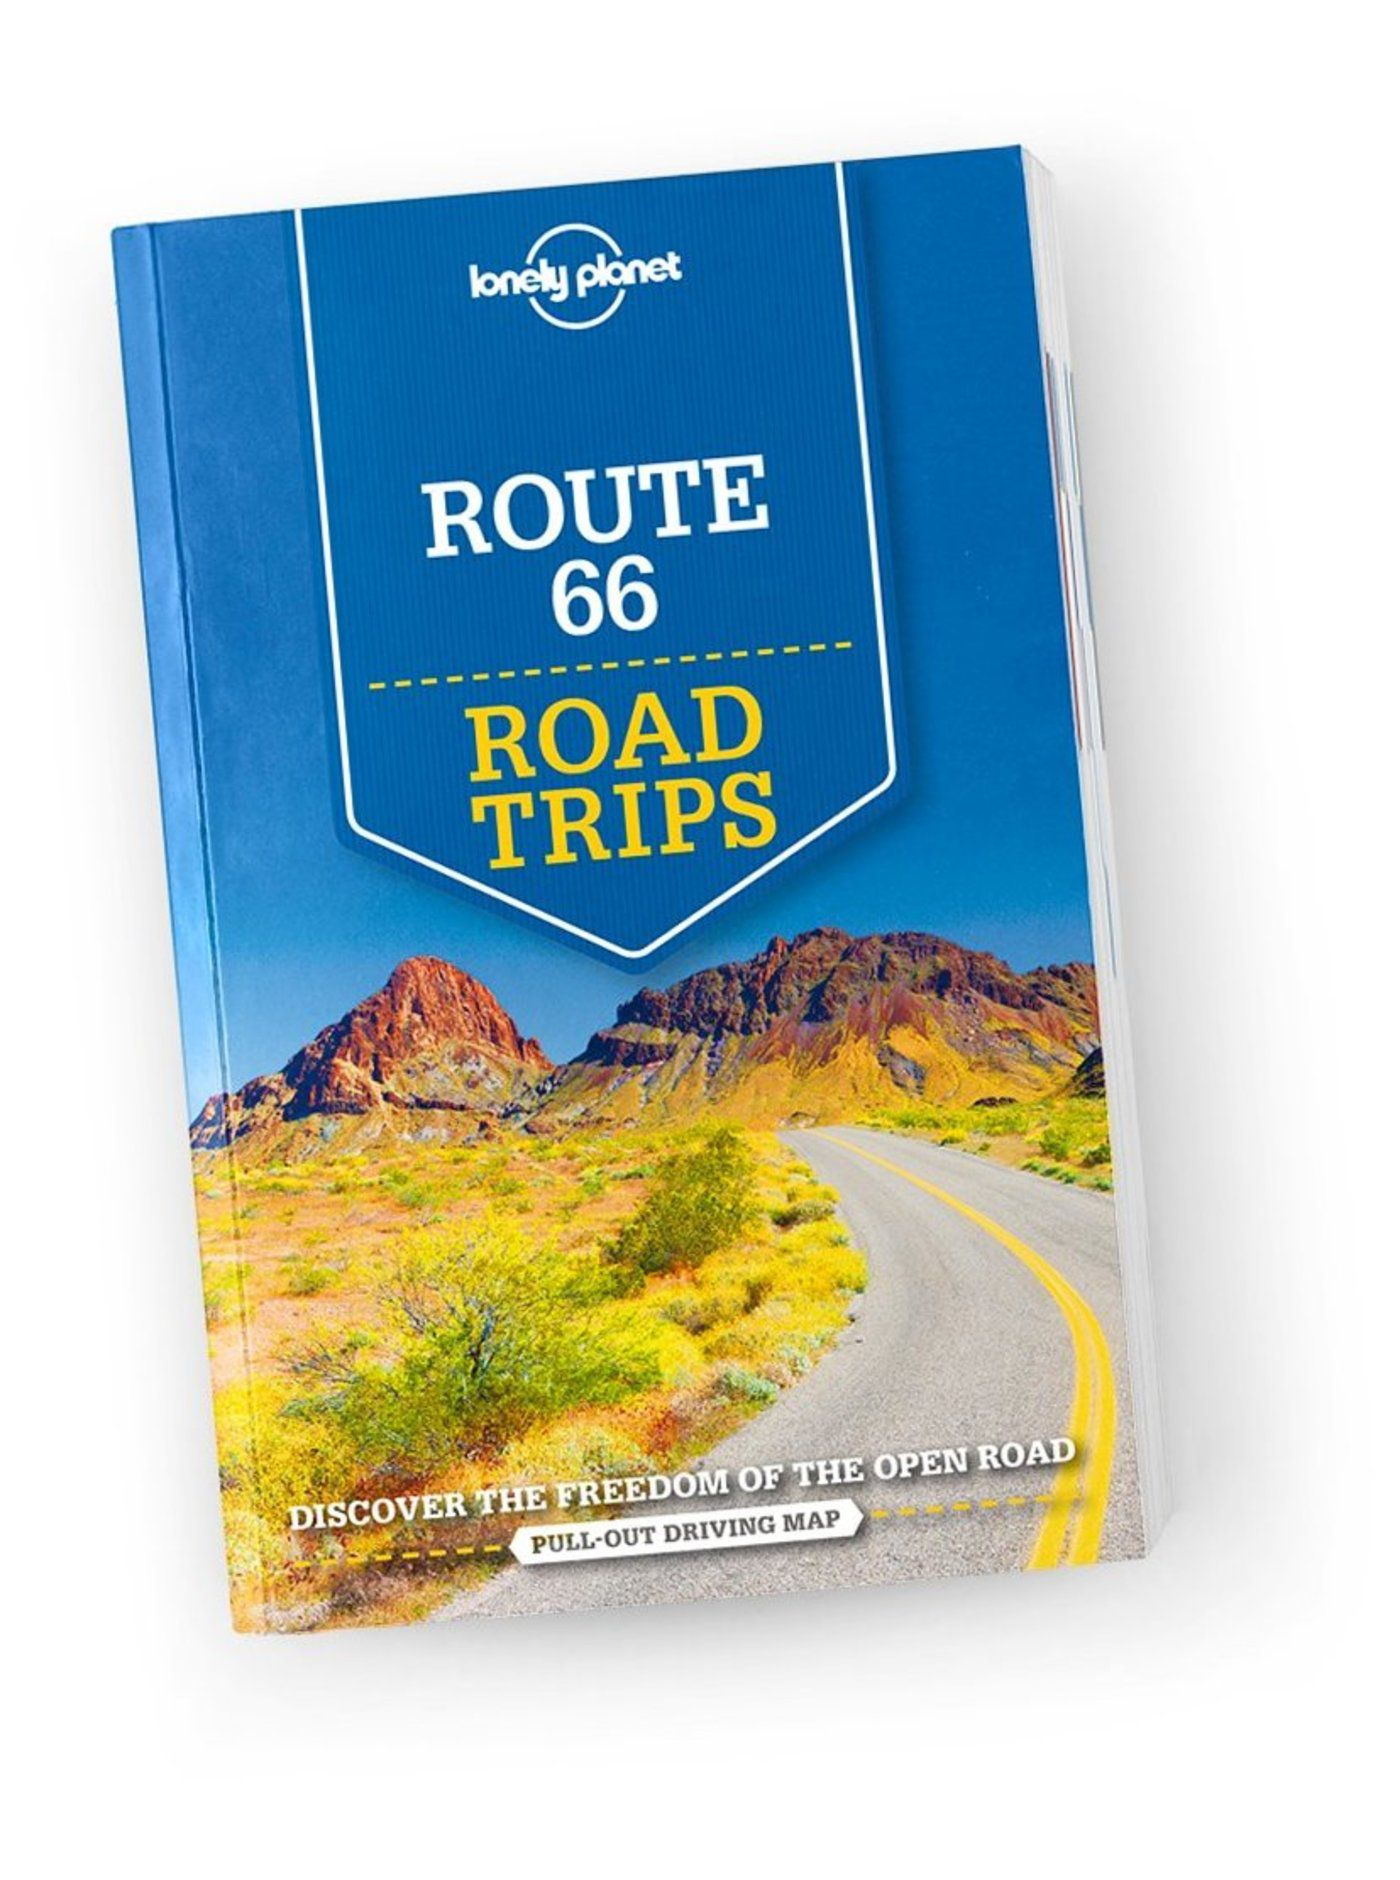 Route 66 Road Trips - Eastern Route 66 Trip (PDF Chapter), 2nd Edition Feb 2018 by Lonely Planet 9781786573582002